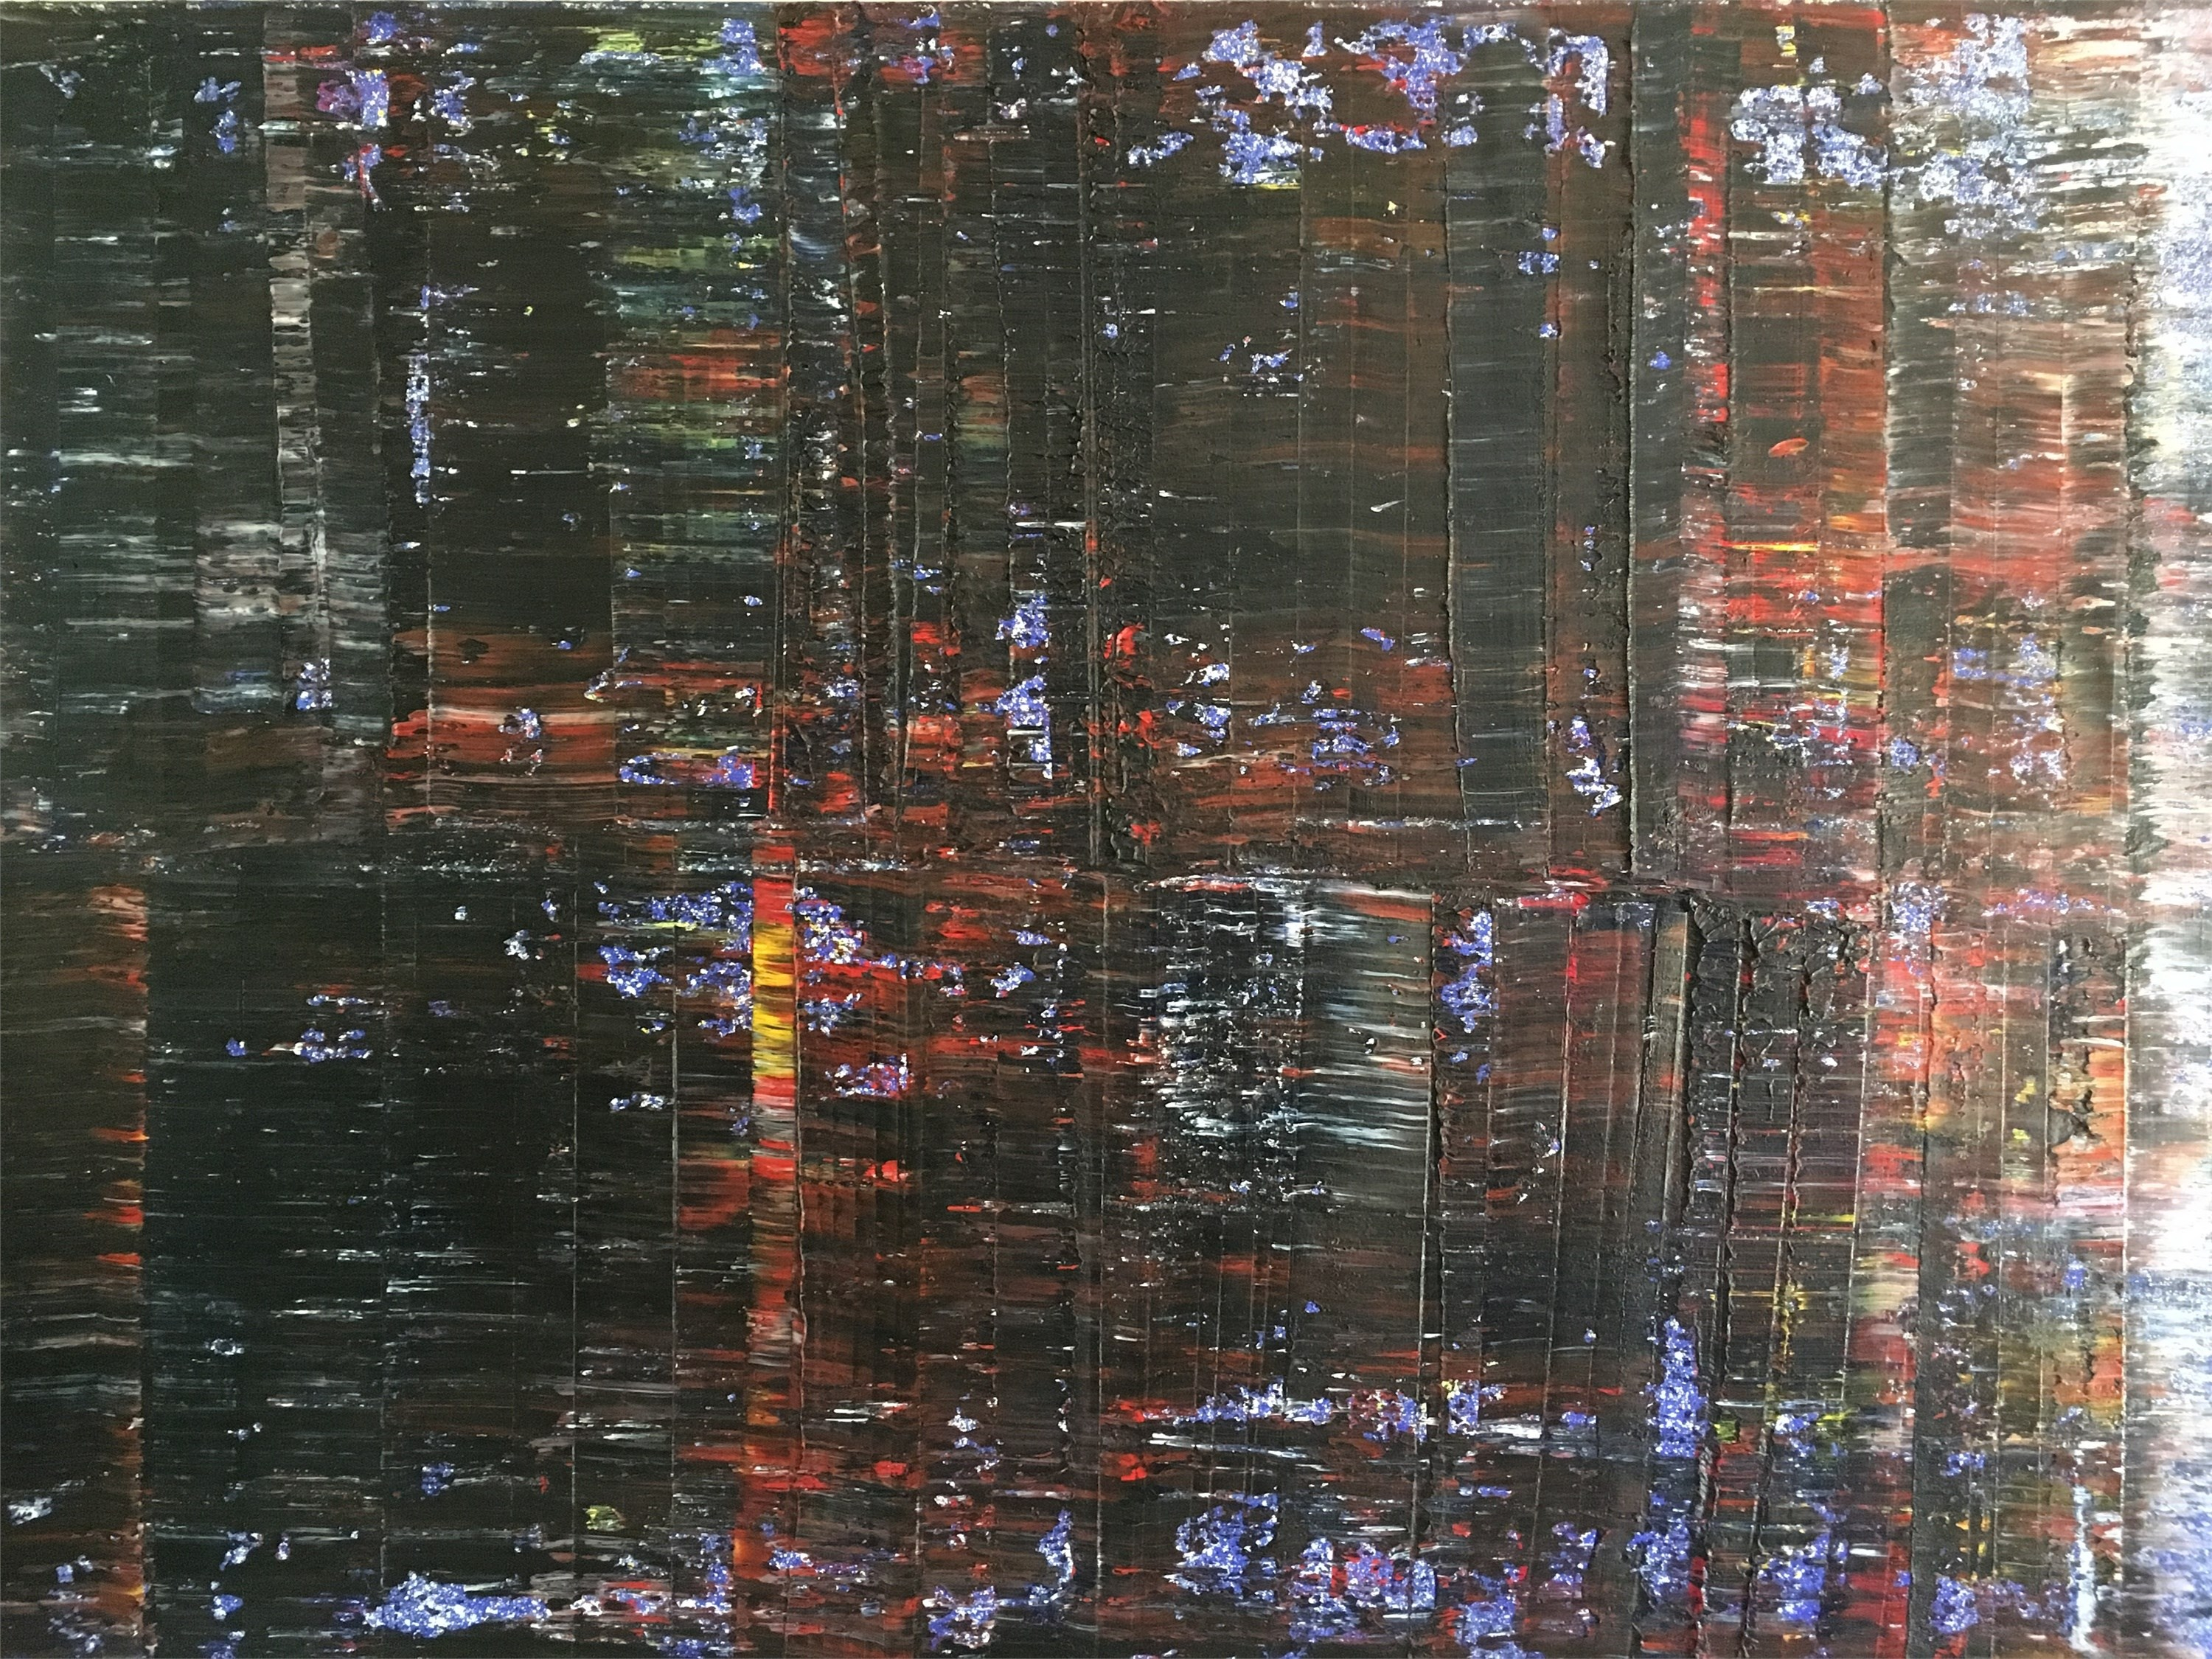 #9 (2014), original Abstract Painting by Pedro Bom